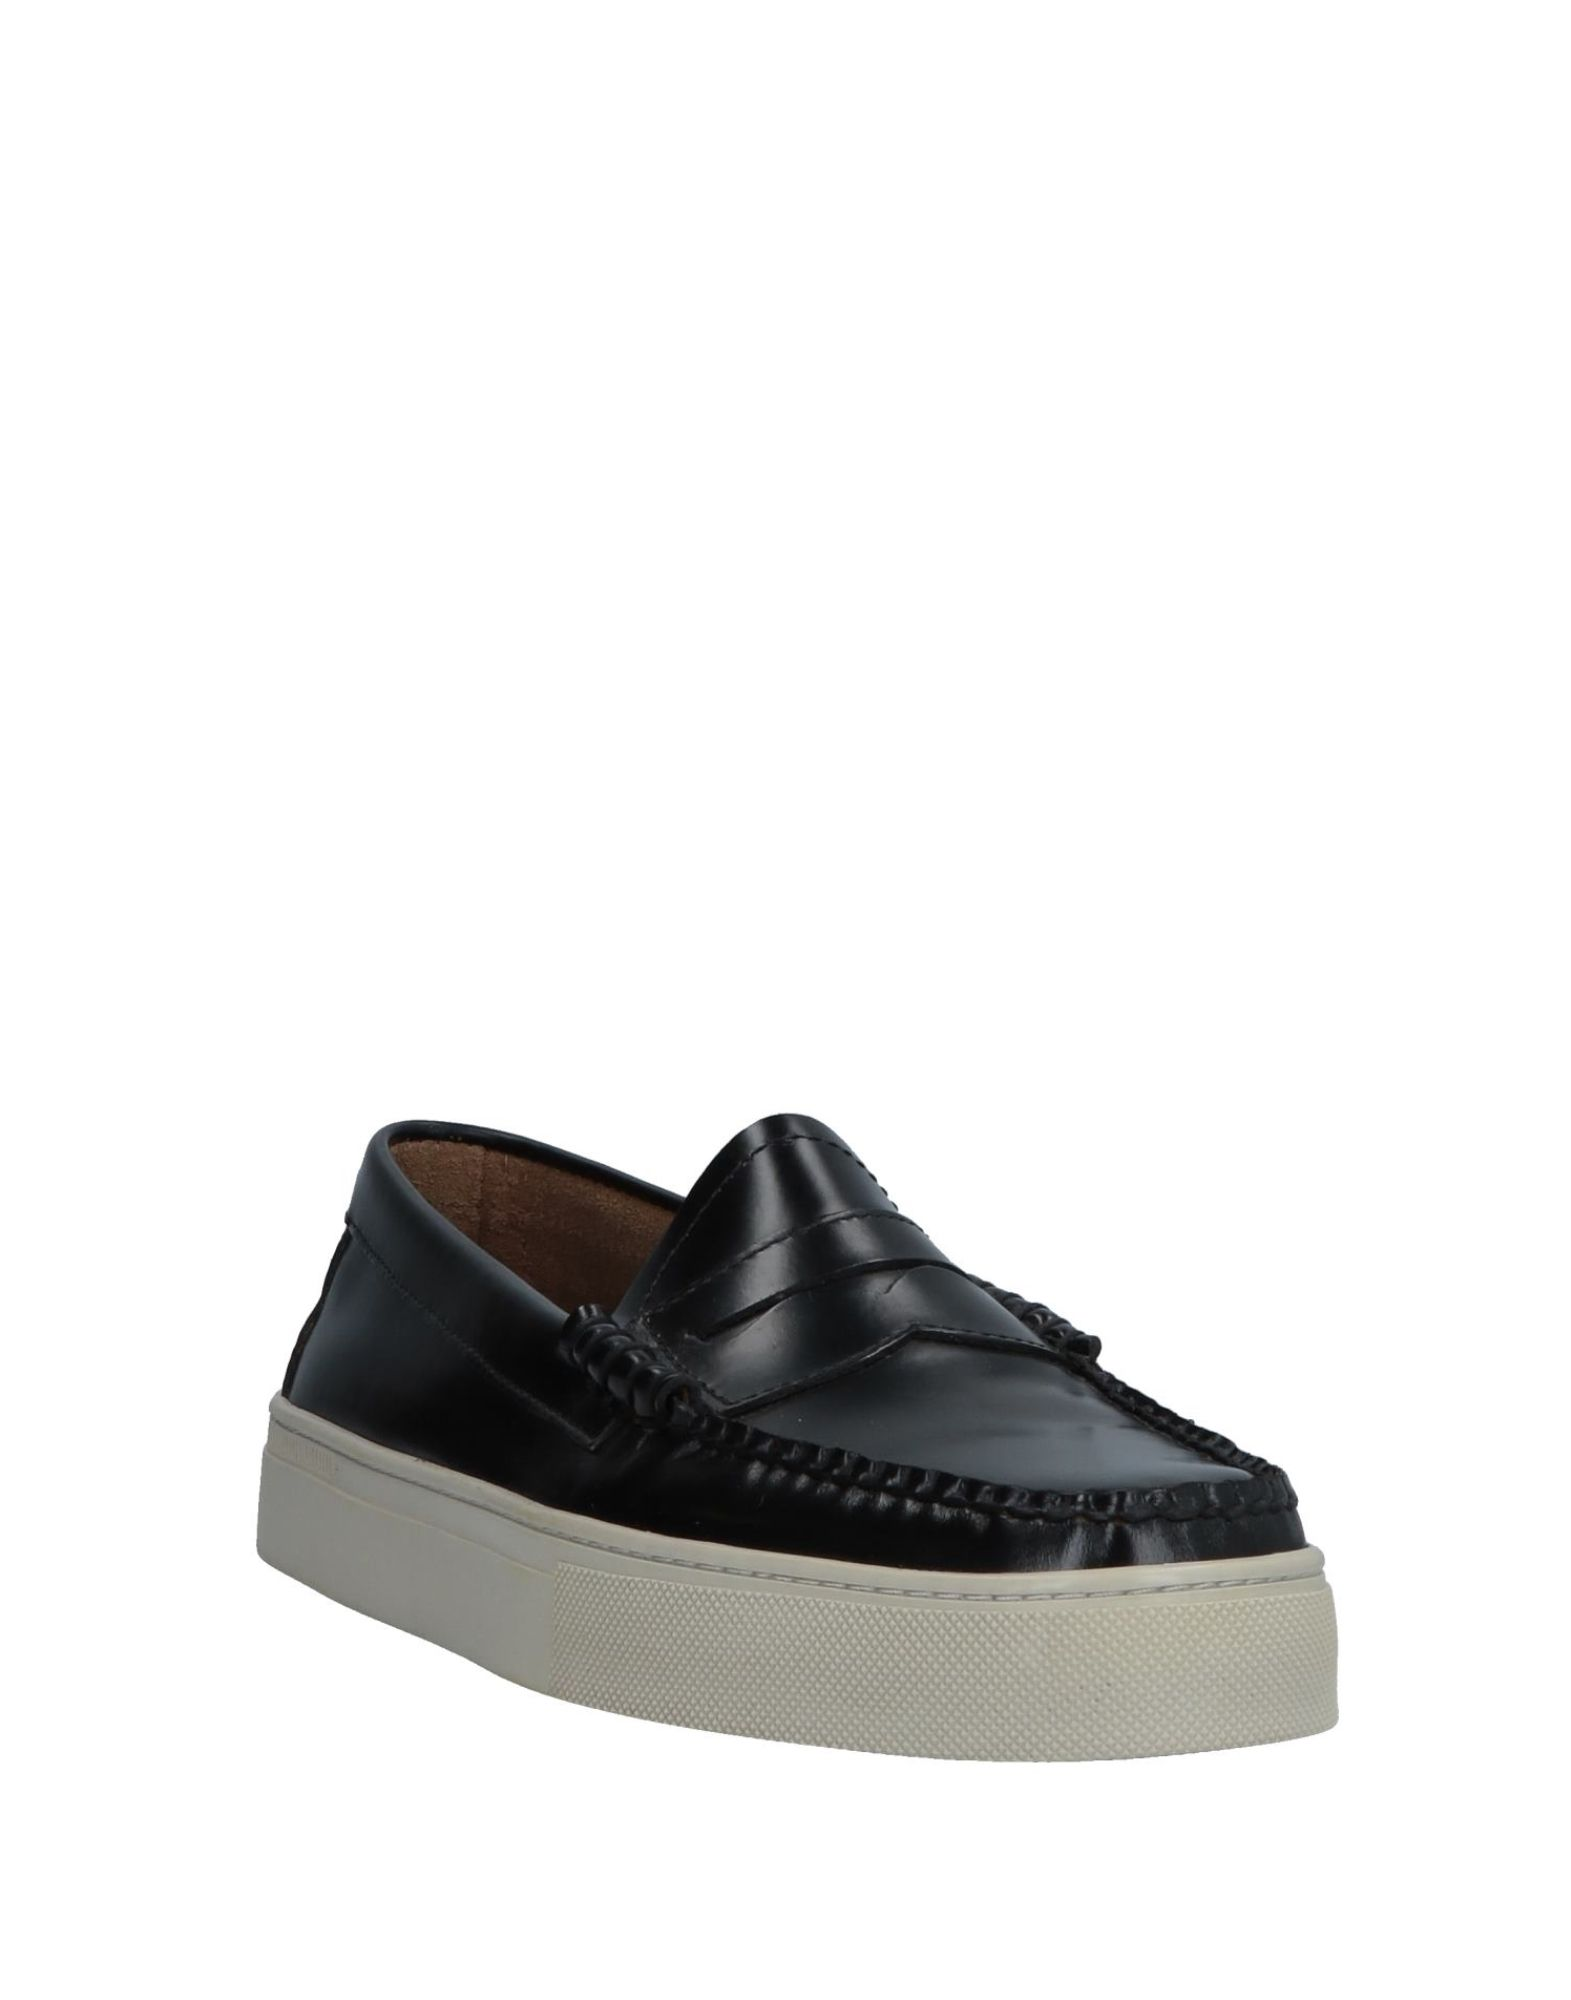 Weejuns® By G.H. Bass Bass Bass & Co Loafers - Men Weejuns® By G.H. Bass & Co Loafers online on  Australia - 11580125PC 3cd9be